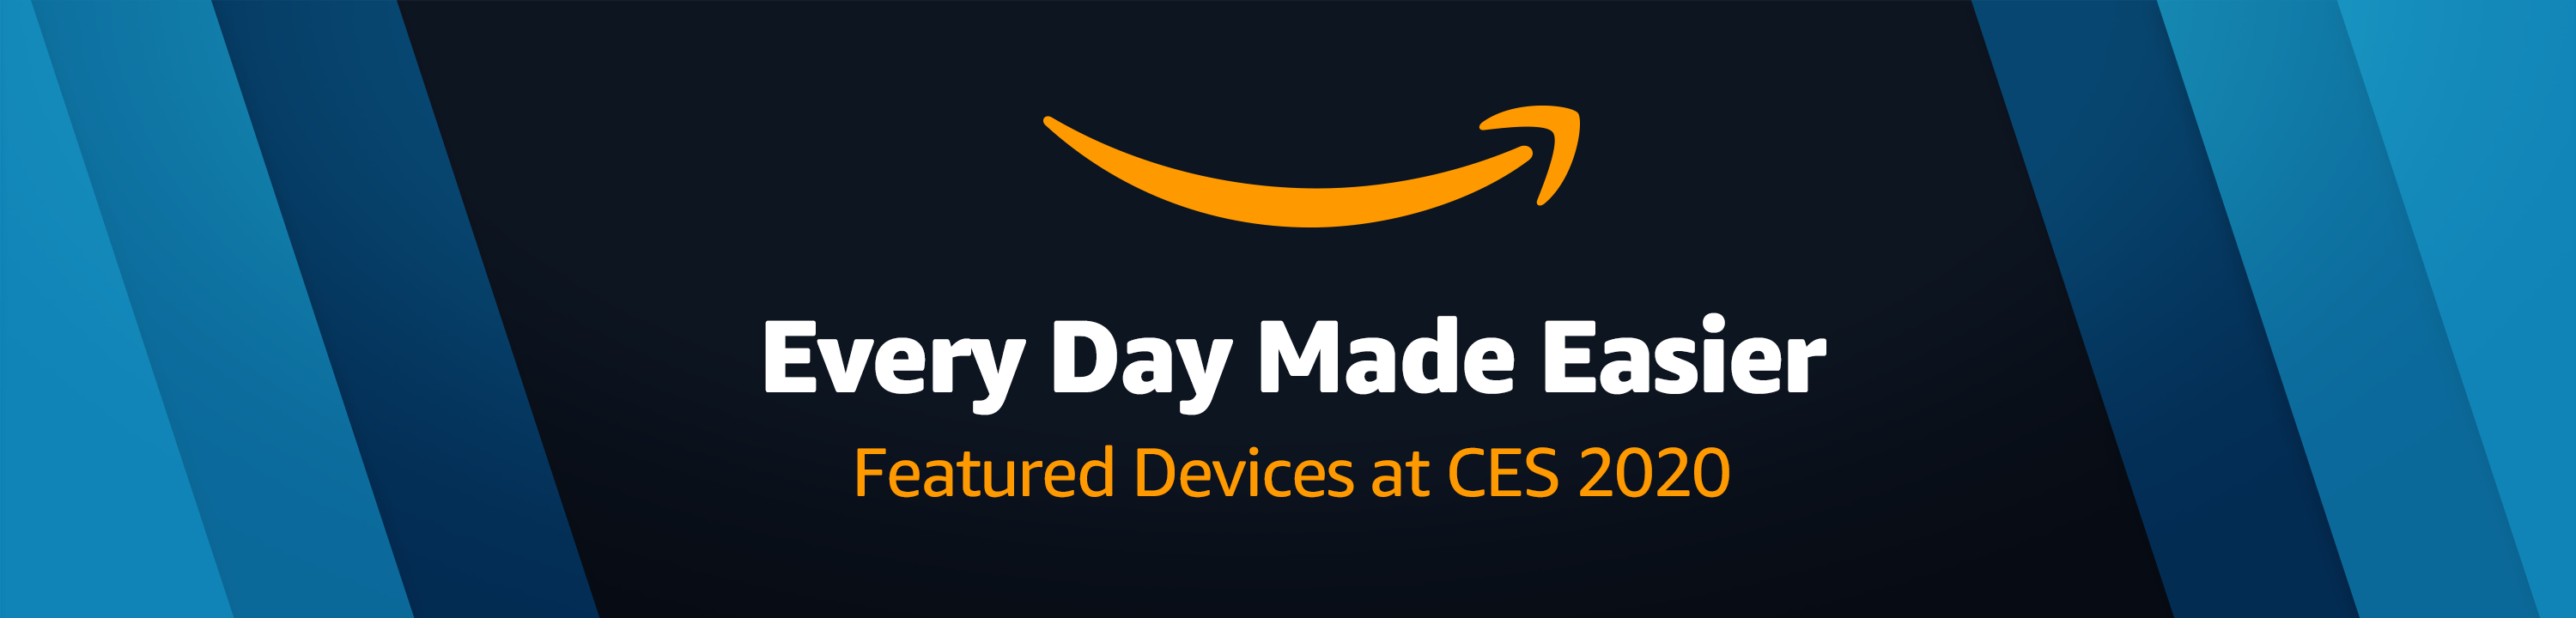 Every Day Made Easier | Featured Devices at CES 2020